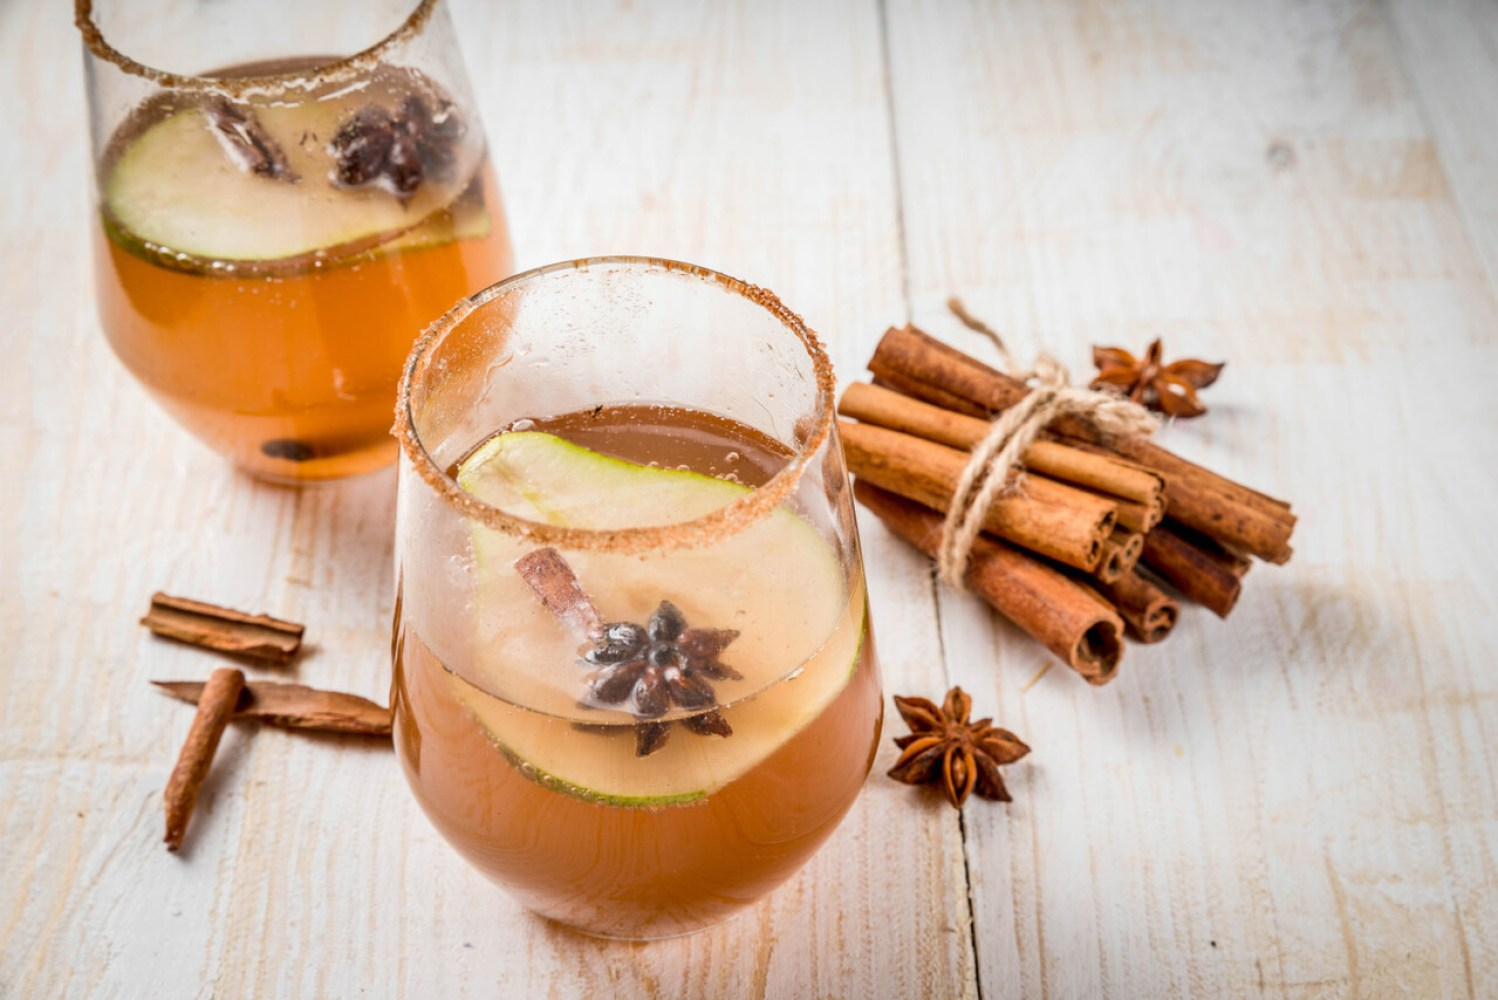 Autumn drinks. Mulled wine. Traditional autumn spicy cocktail with pear, cider and chocolate syrup, with cinnamon, anise, brown sugar. On a white wooden table. Copy space